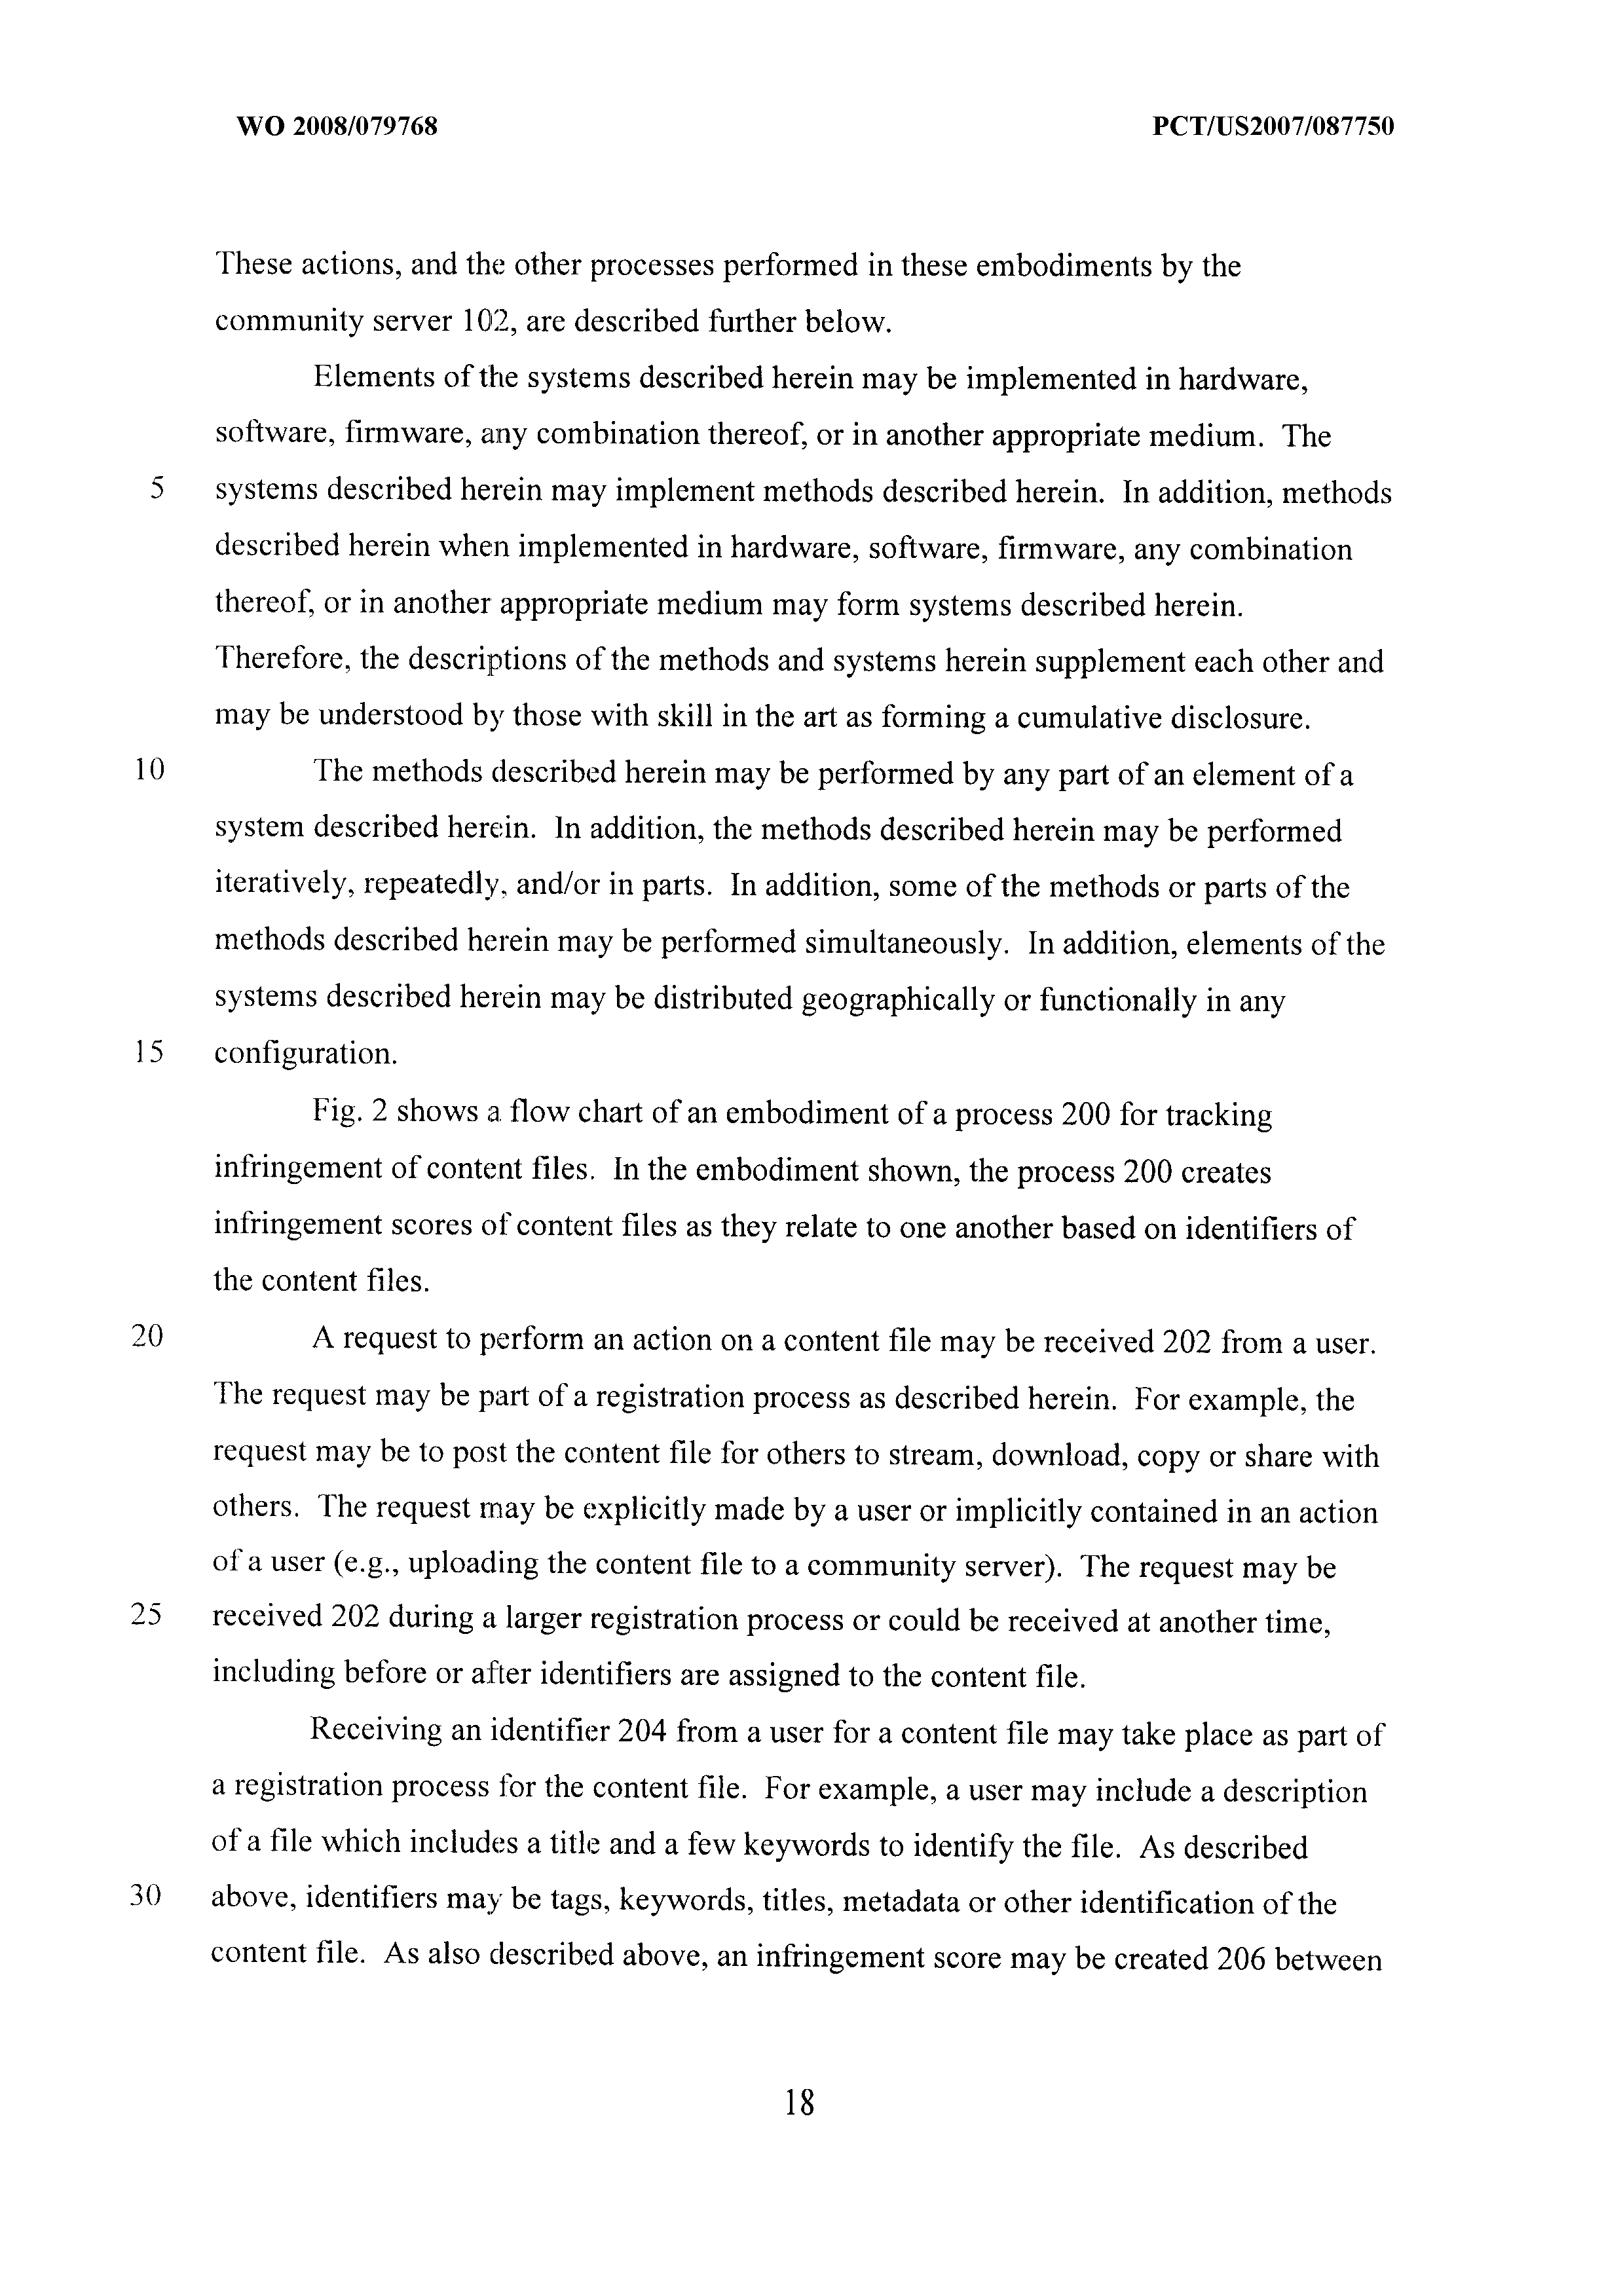 WO 2008/079768 A1 - Method And System For Unauthorized